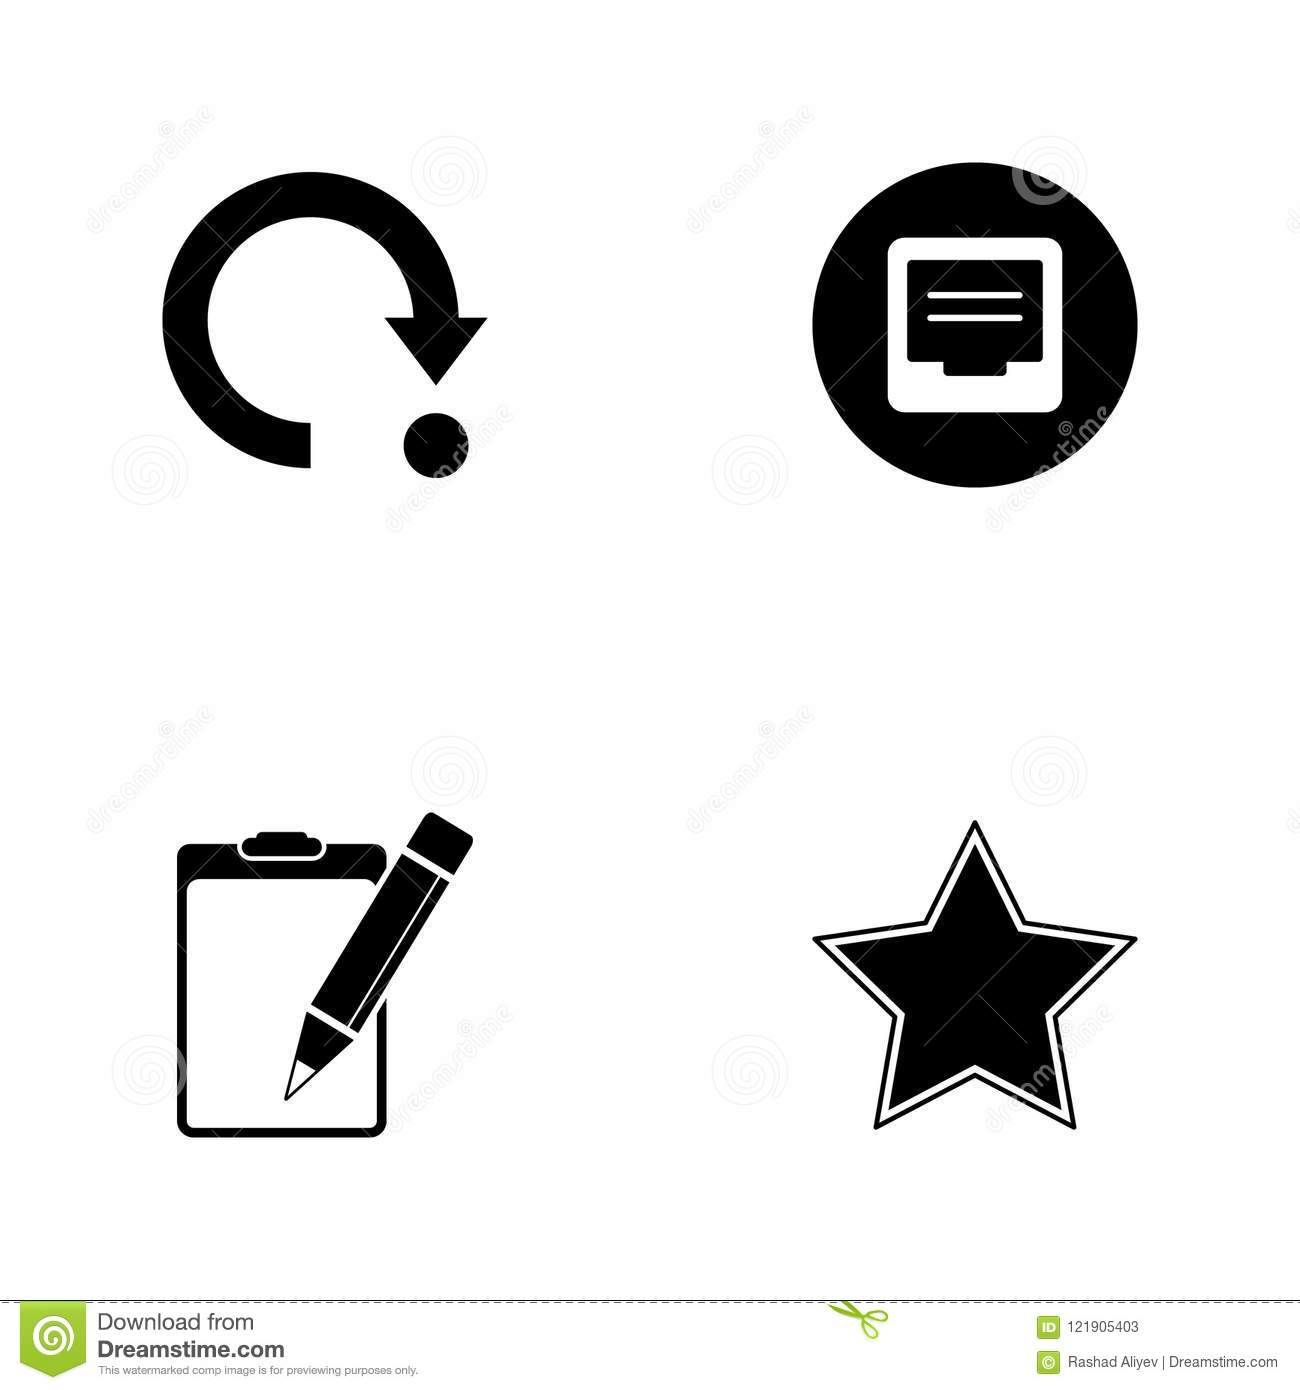 Vector illustration set web icons. Elements star, paper tablet and pencil, comments sign and return sign icon